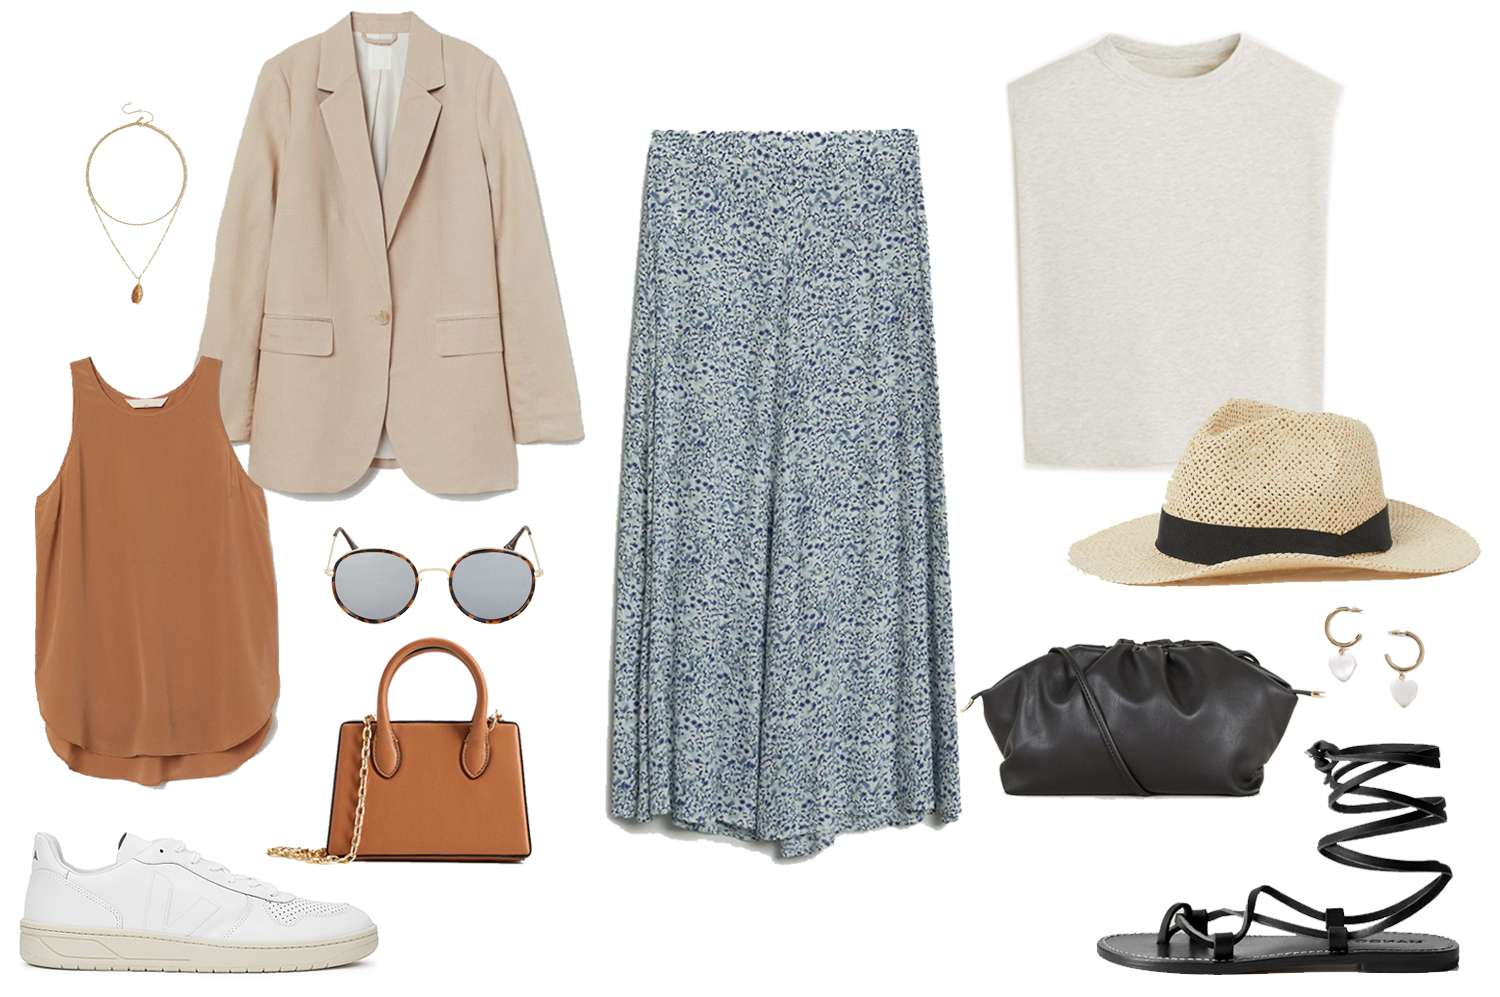 midi skirt outfit ideas